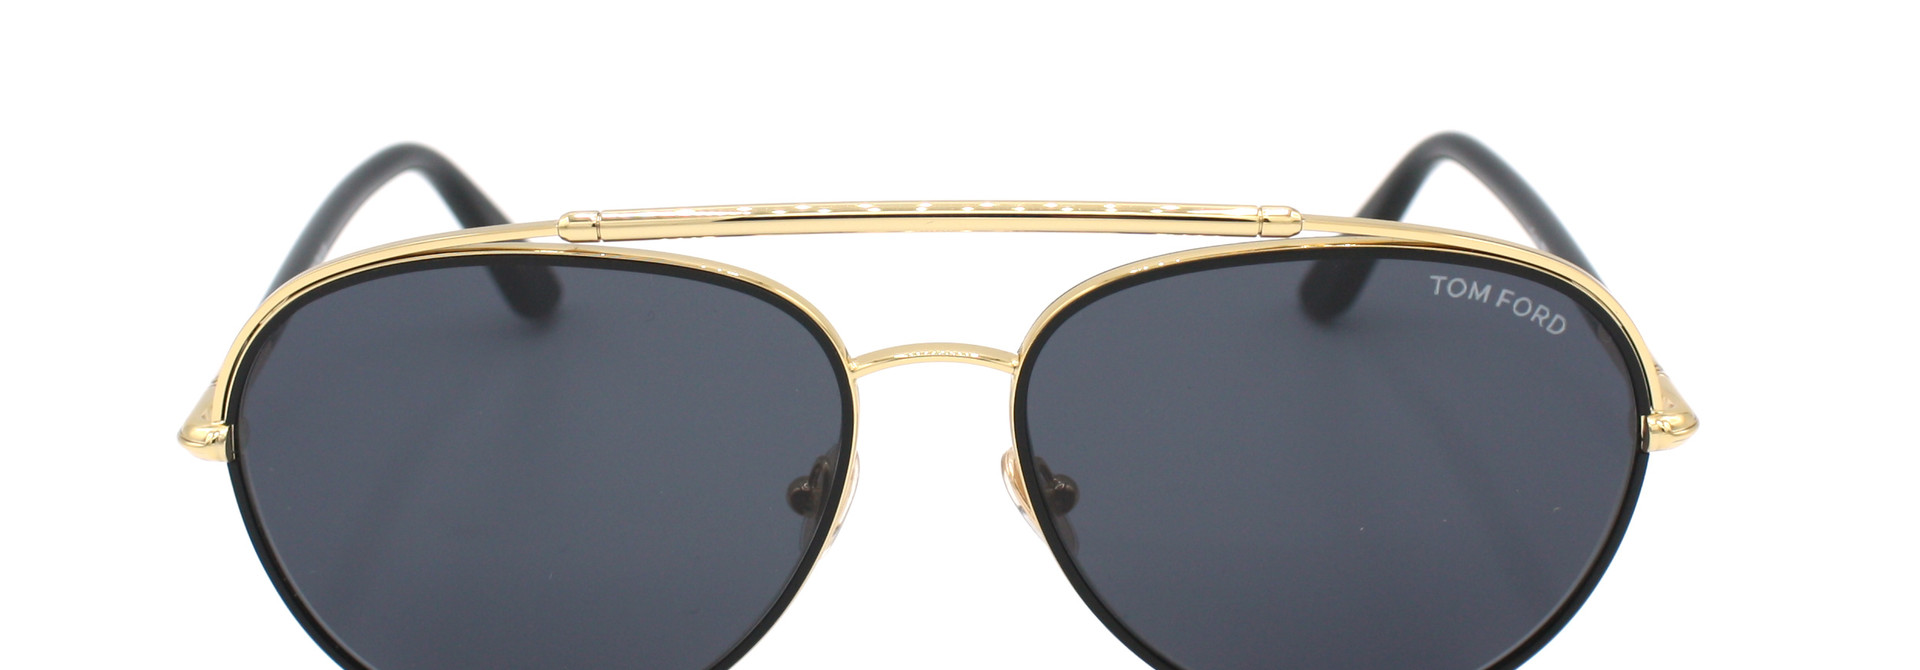 Tom Ford - TF0748/S - 01A